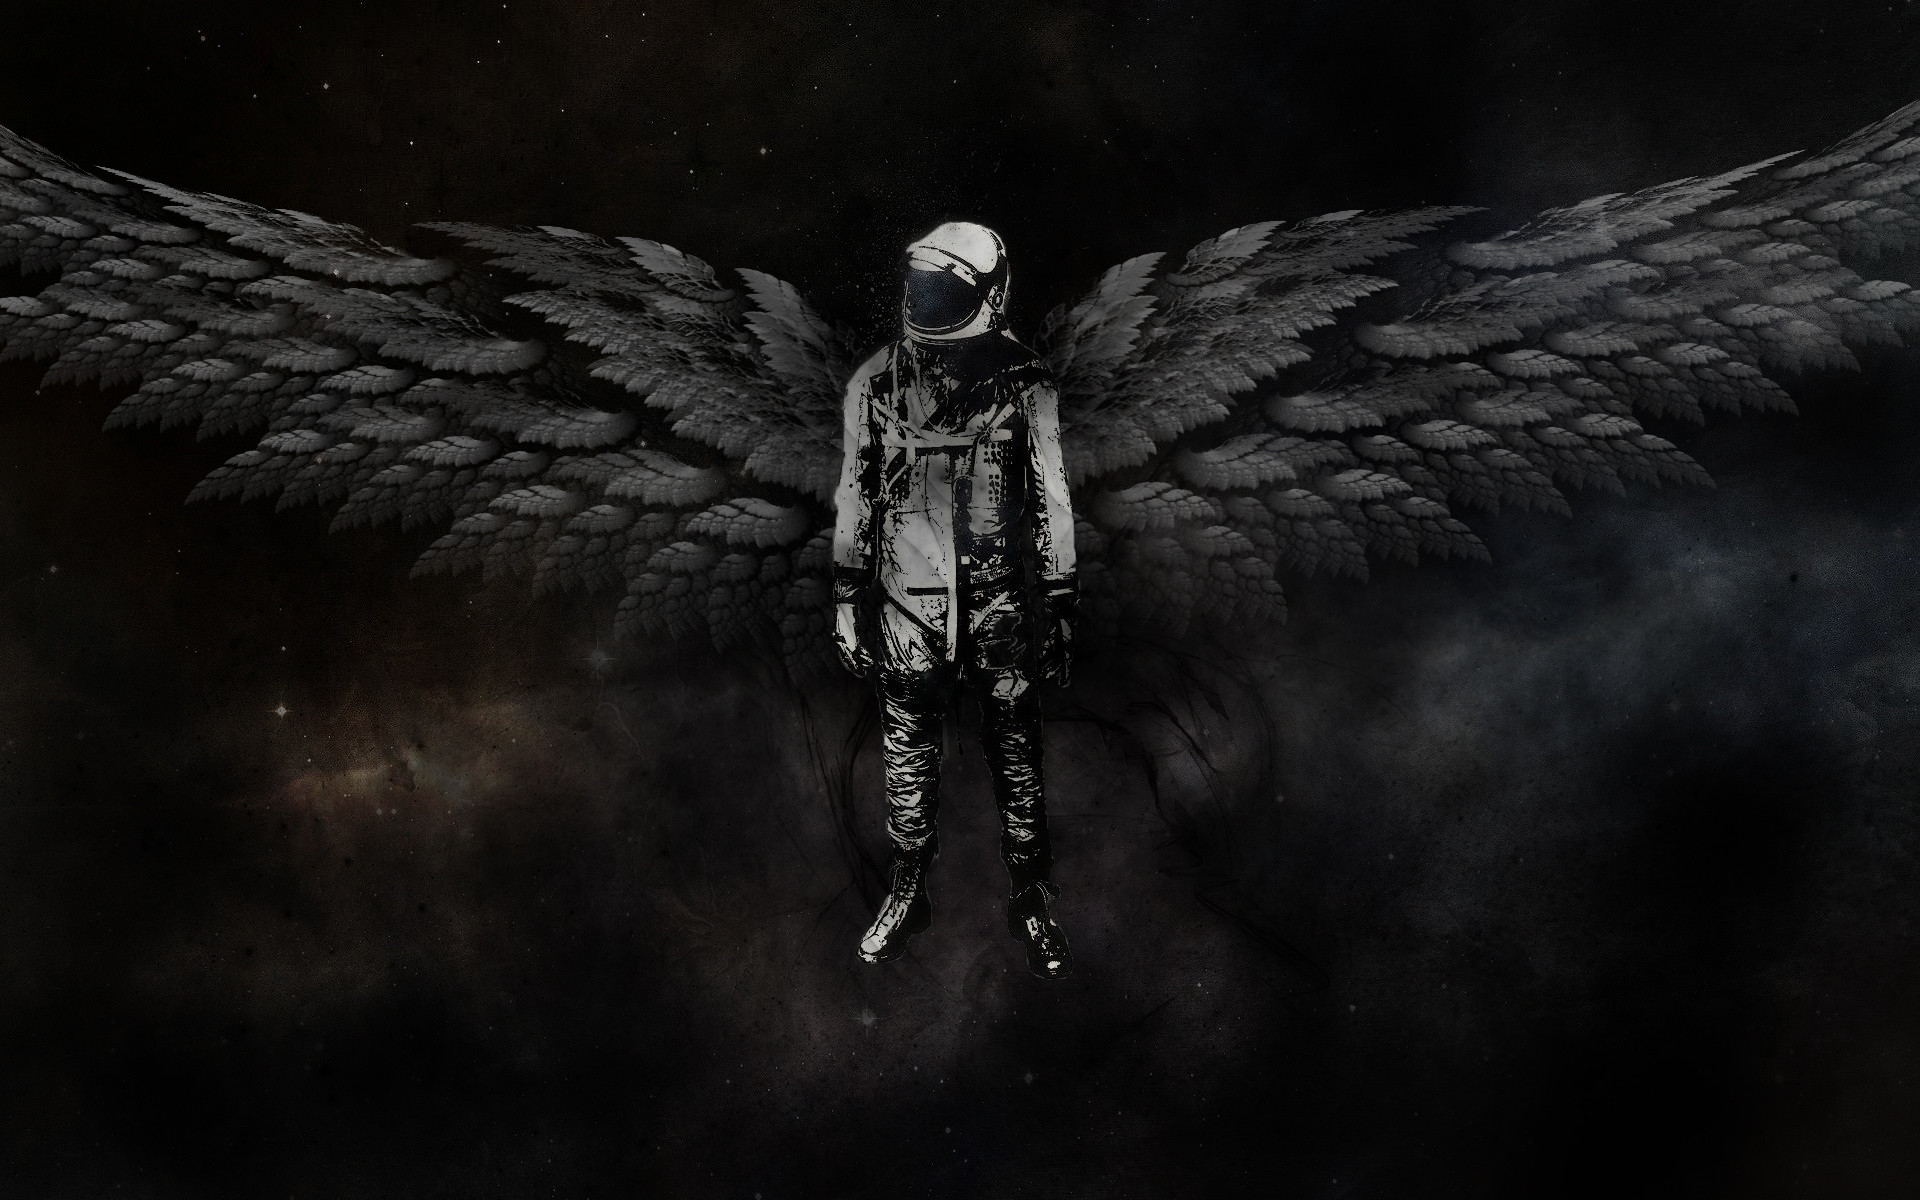 1920x1200 Outer space astronauts angel wings wallpaper |  | 16946 |  WallpaperUP